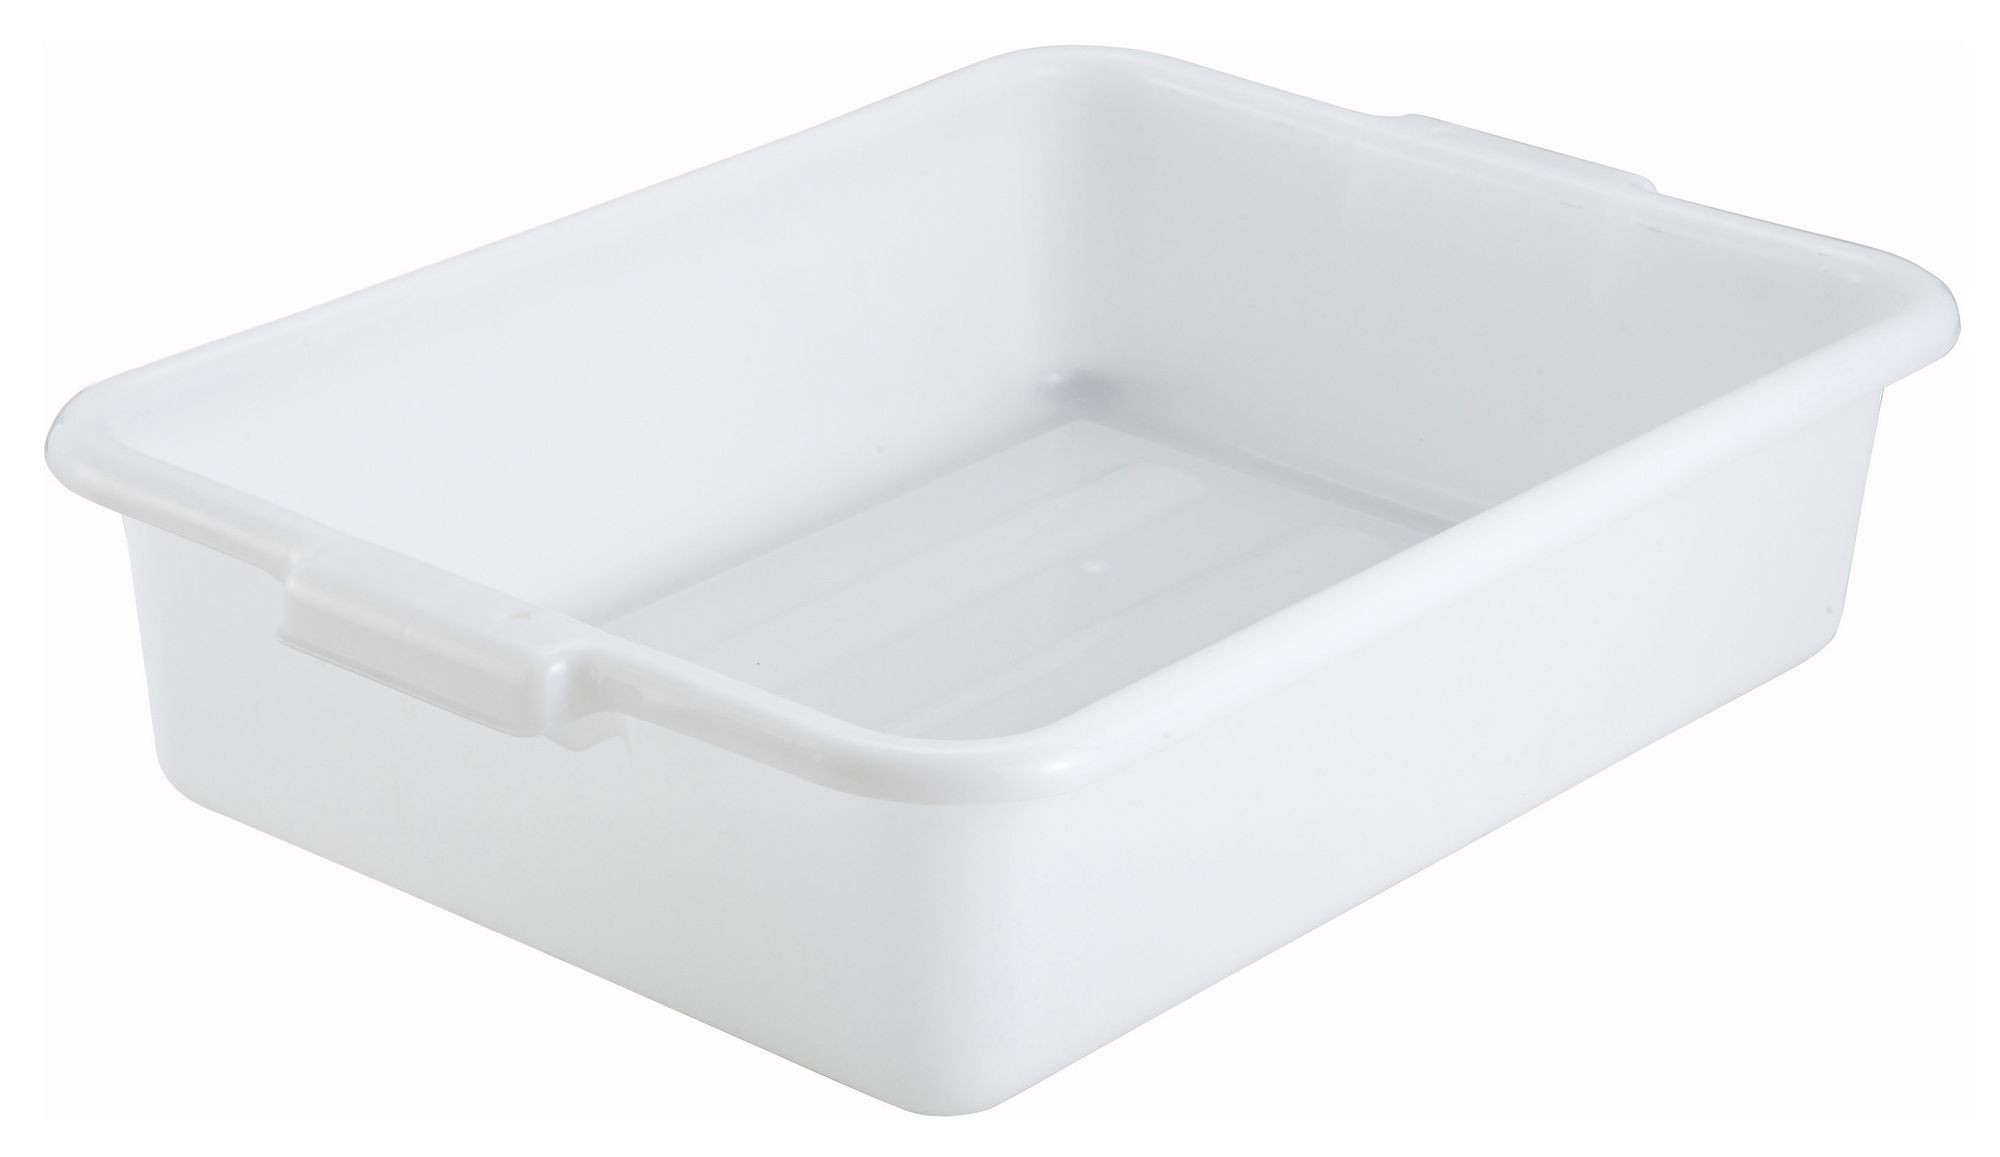 "Winco PL-5W White Dish Box 20-1/4"" x 15-1/2"" x 5"""